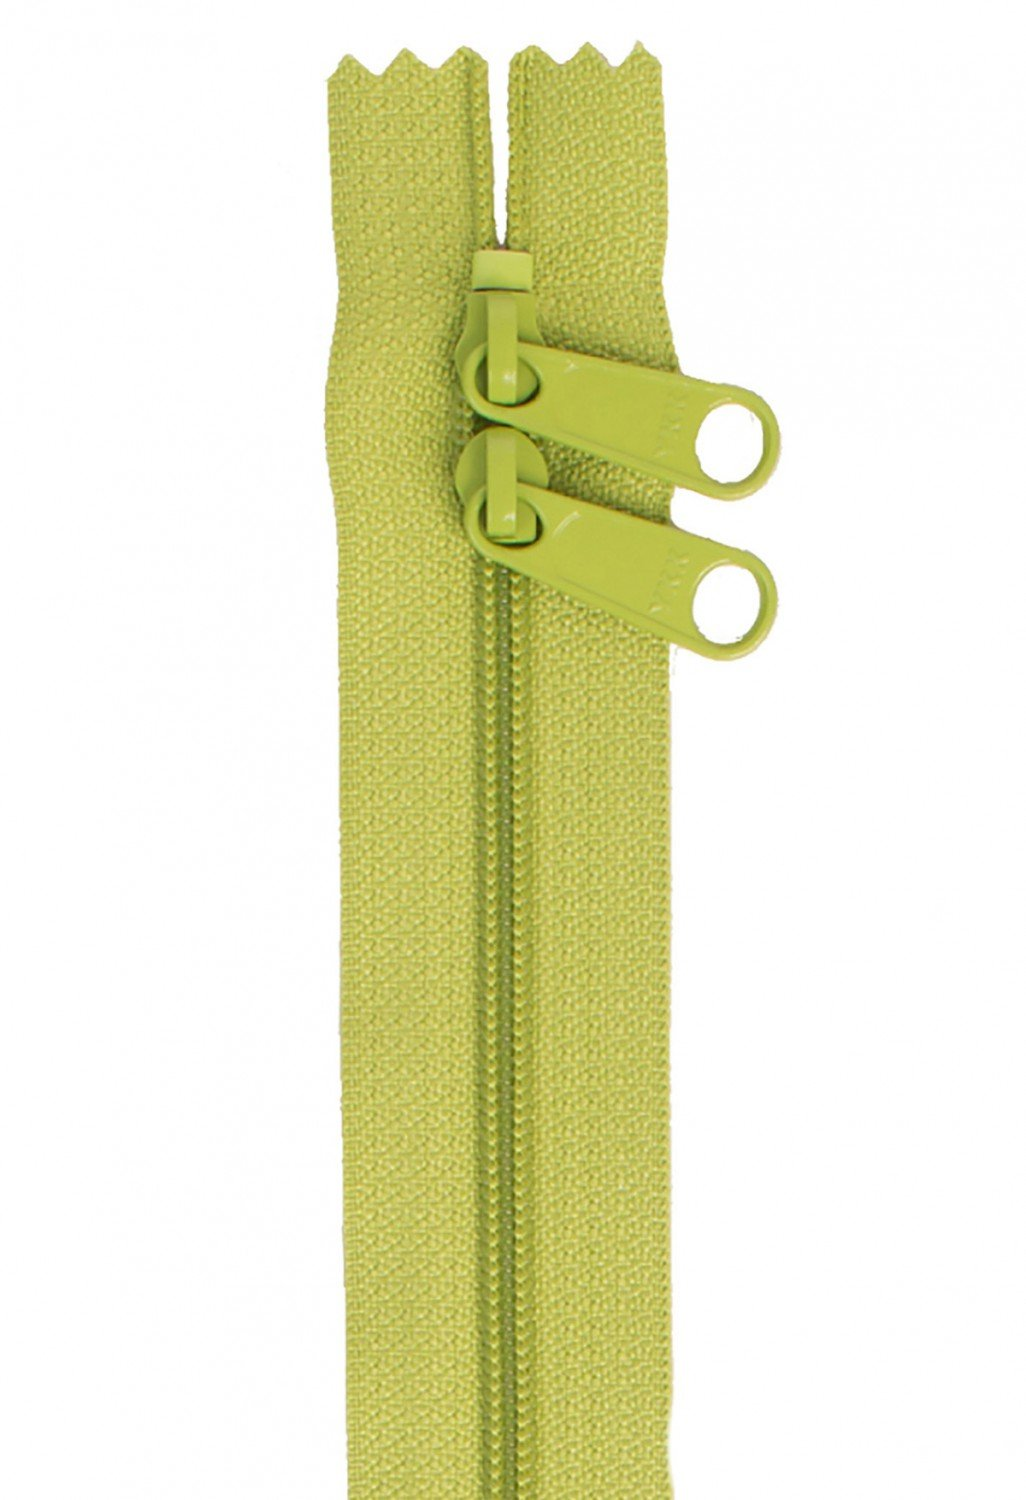 Annie's Handbag Zipper - Apple Green